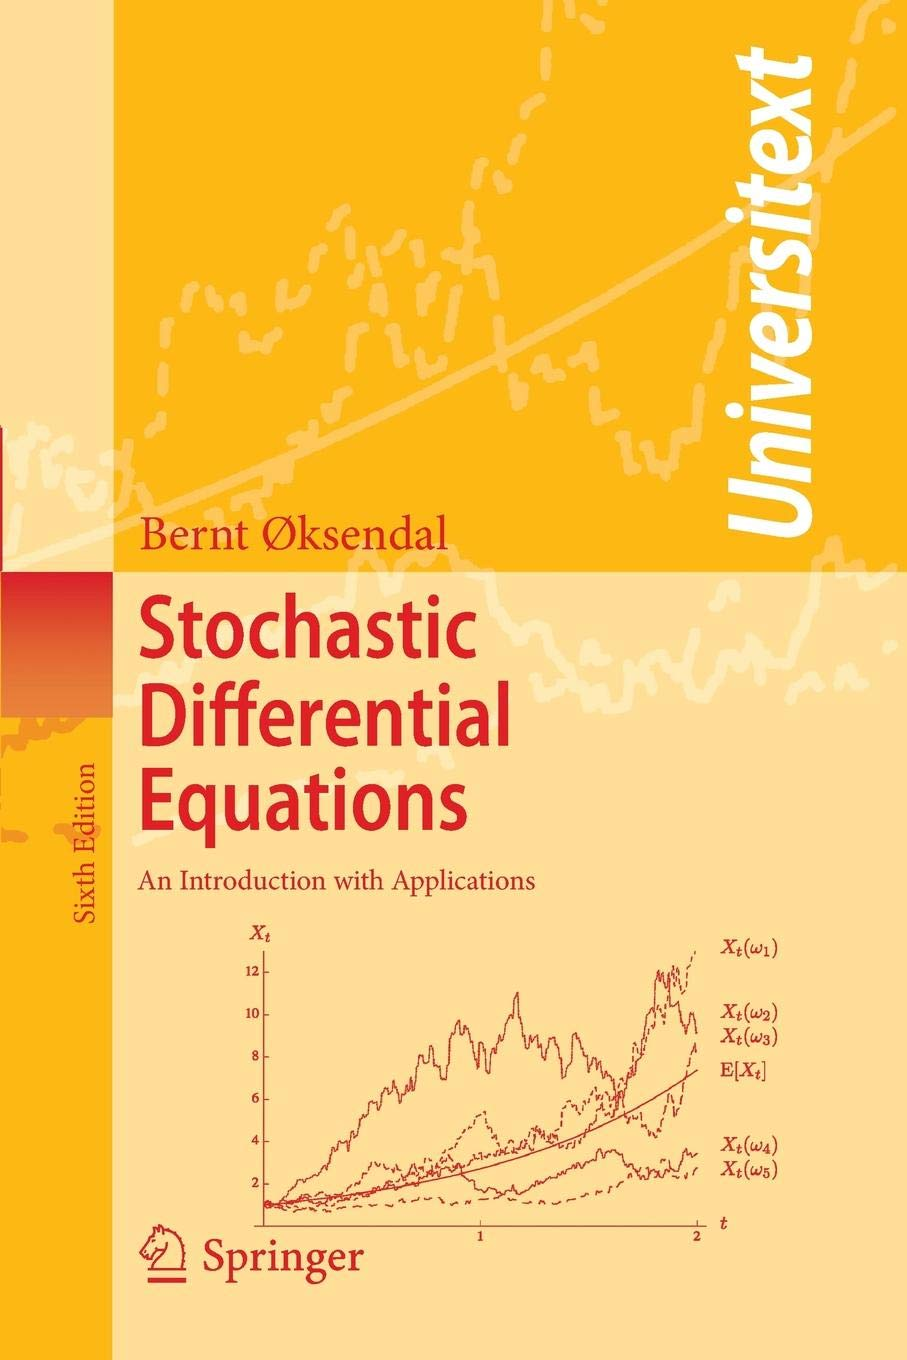 Stochastic Differential Equations: An Introduction with